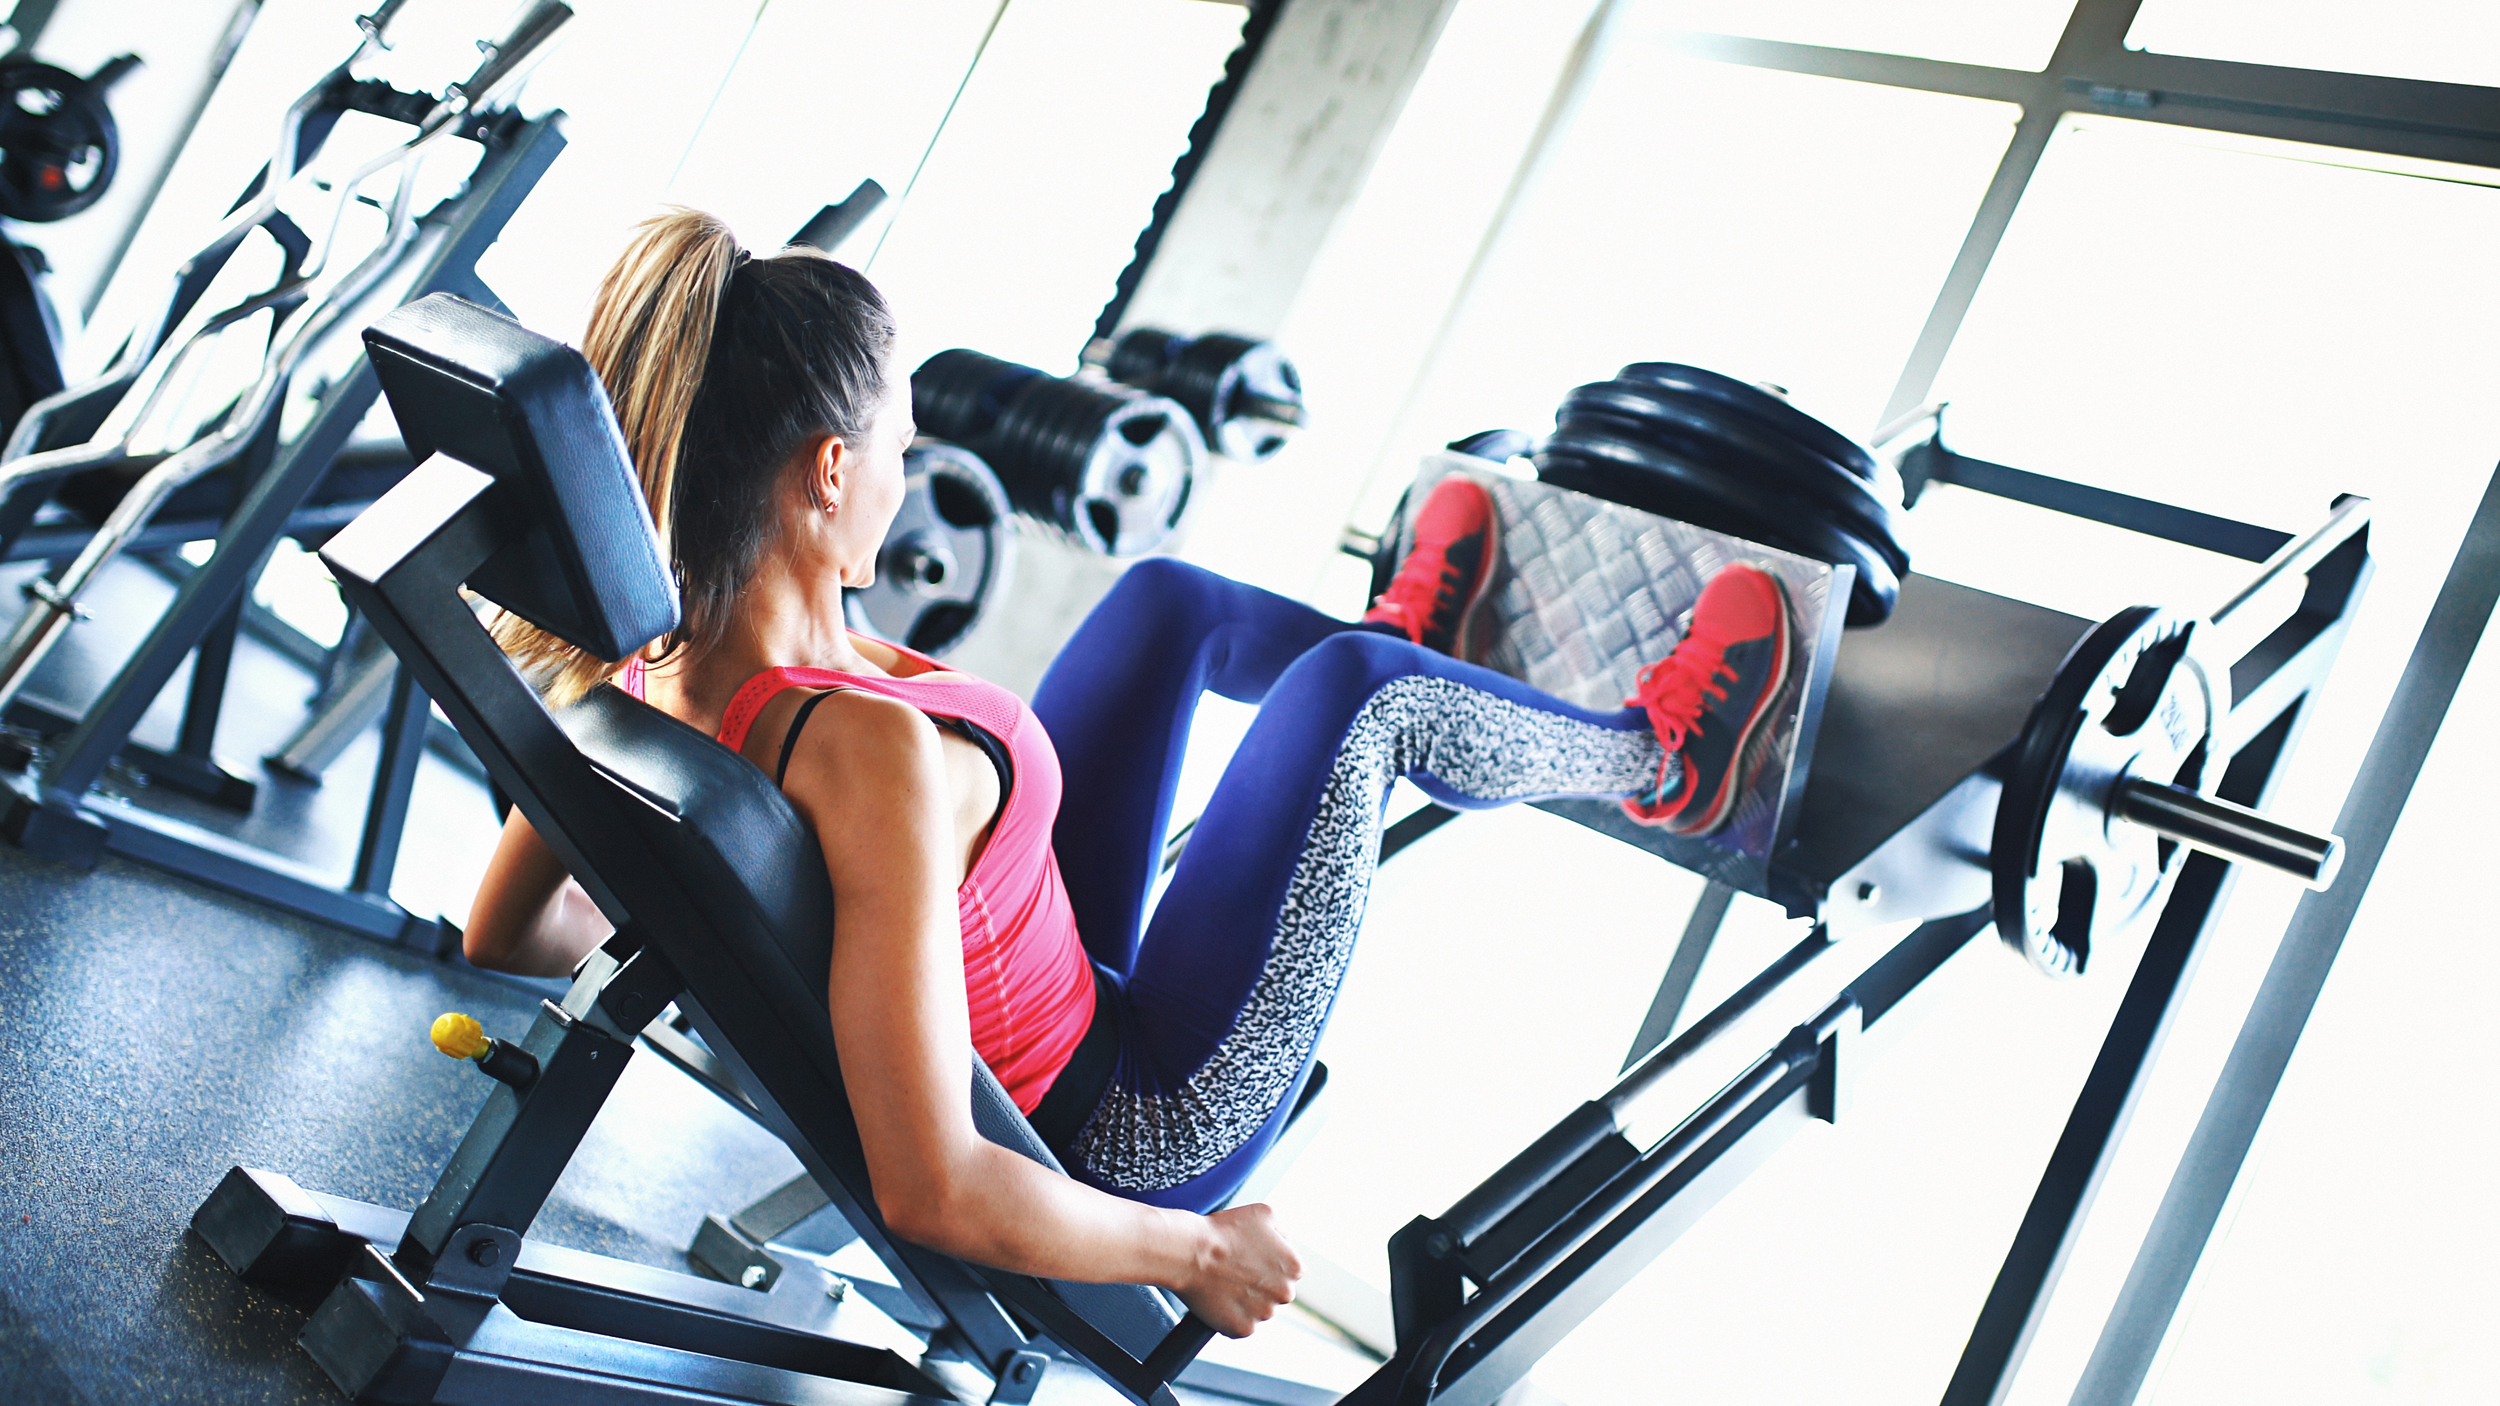 8 exercises trainers never do (and what to do instead)